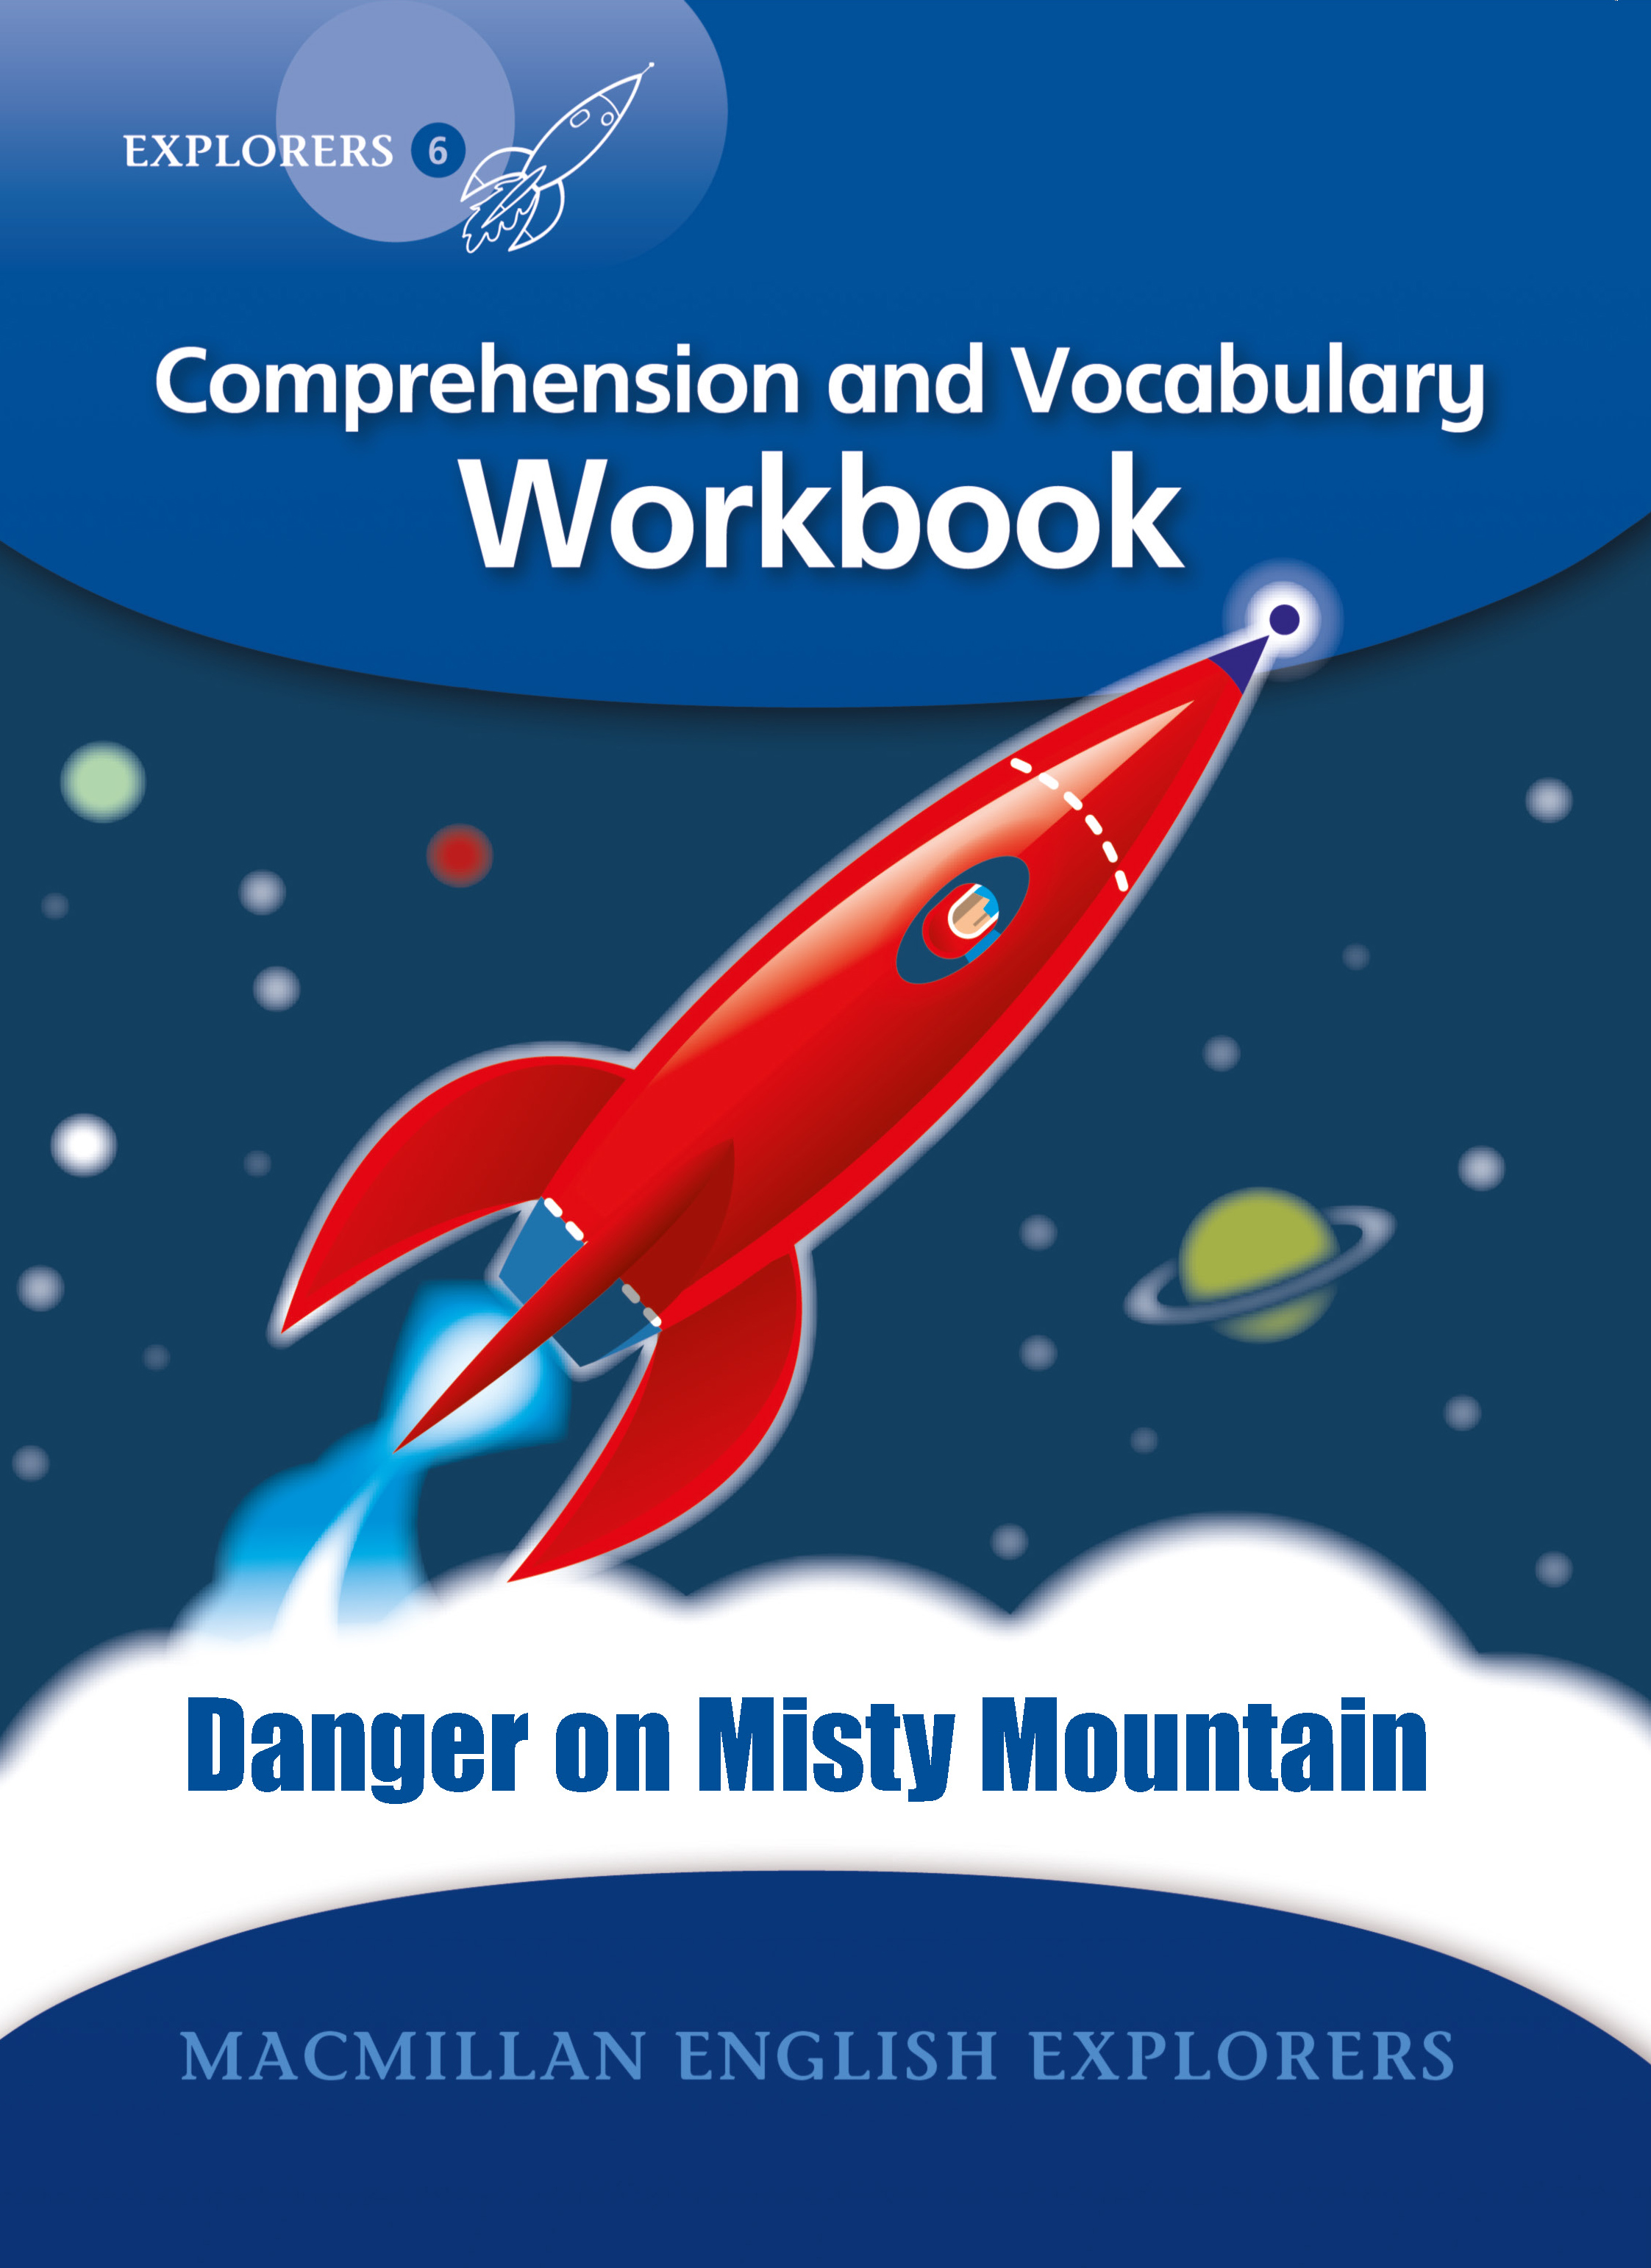 Explorers 6: Danger on Misty Mountain Workbook